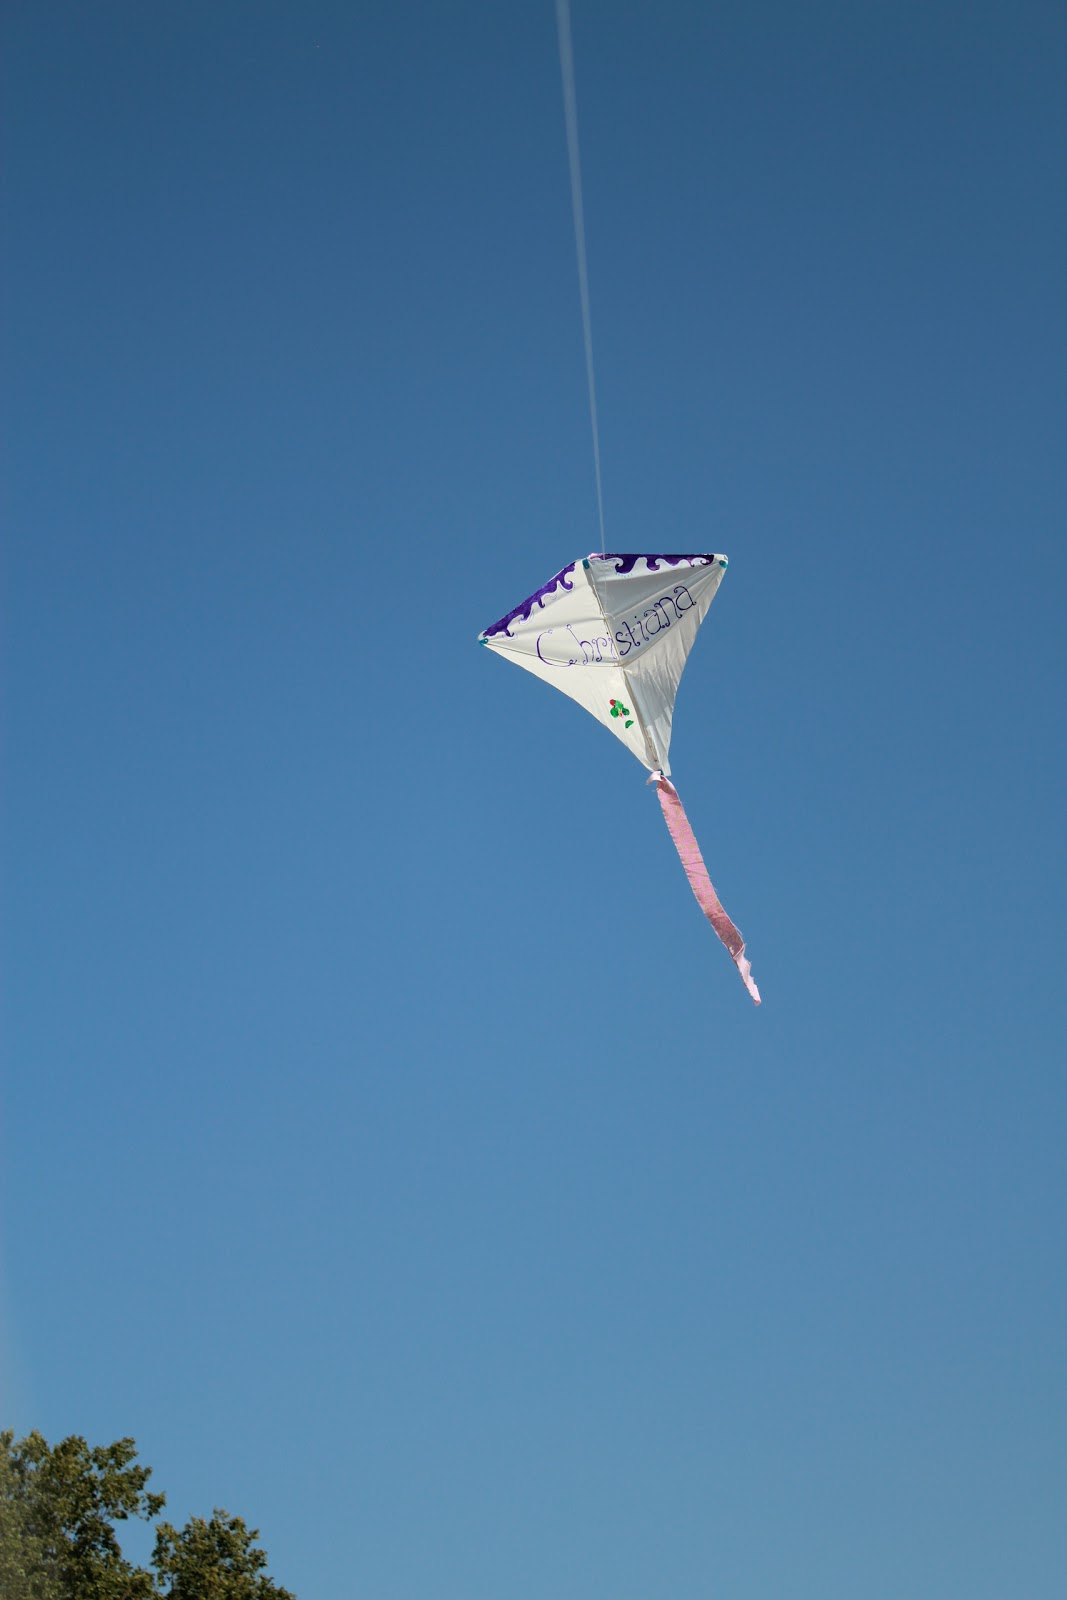 Go To Www Bing Comwww Seattle Govmayor: The Niewald Kitchen Table : Let's Go Fly A Kite